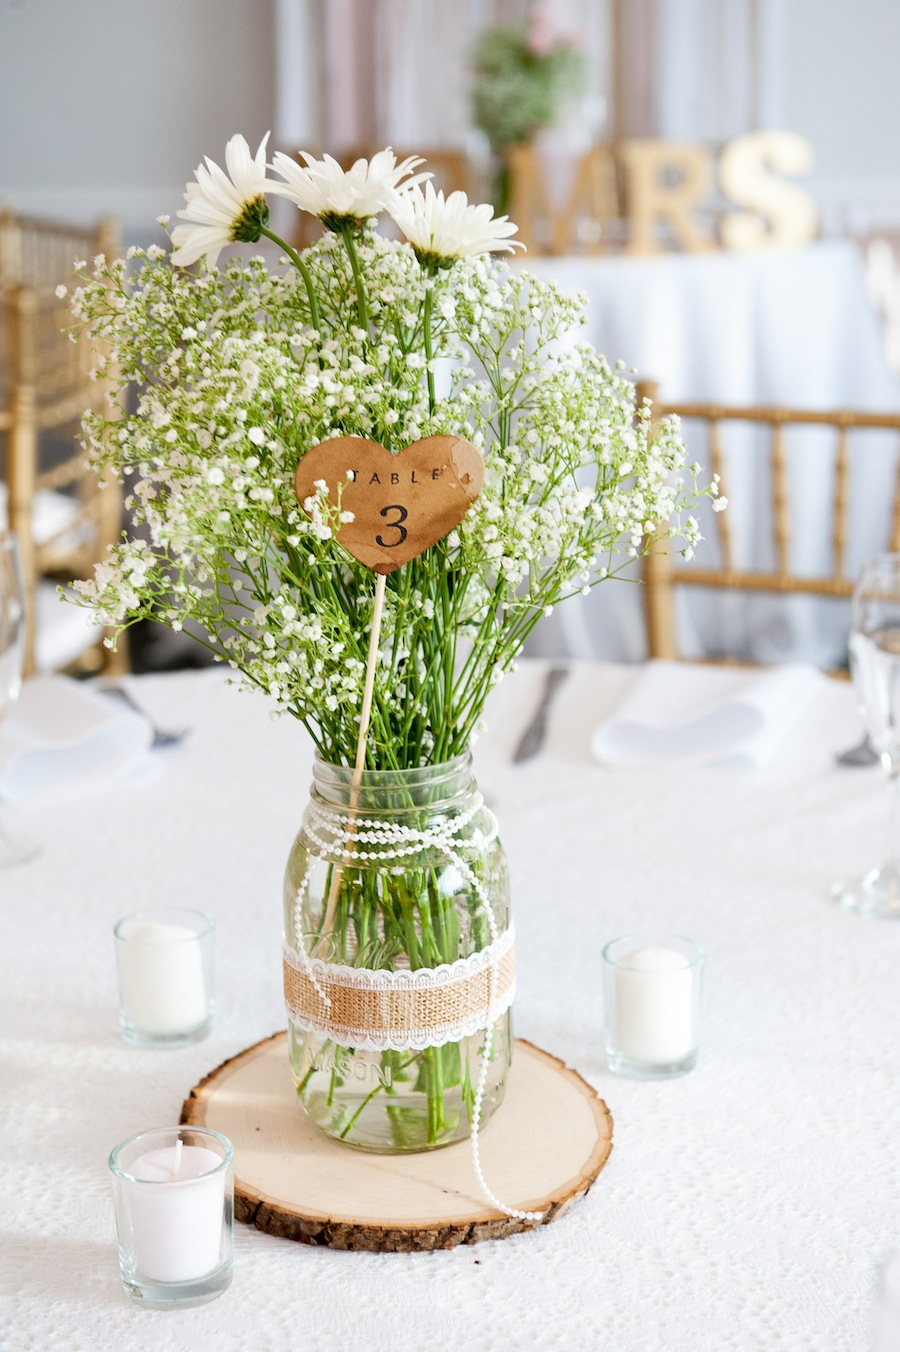 Rustic Baby's Breath Wedding Centerpieces with Wood Accents